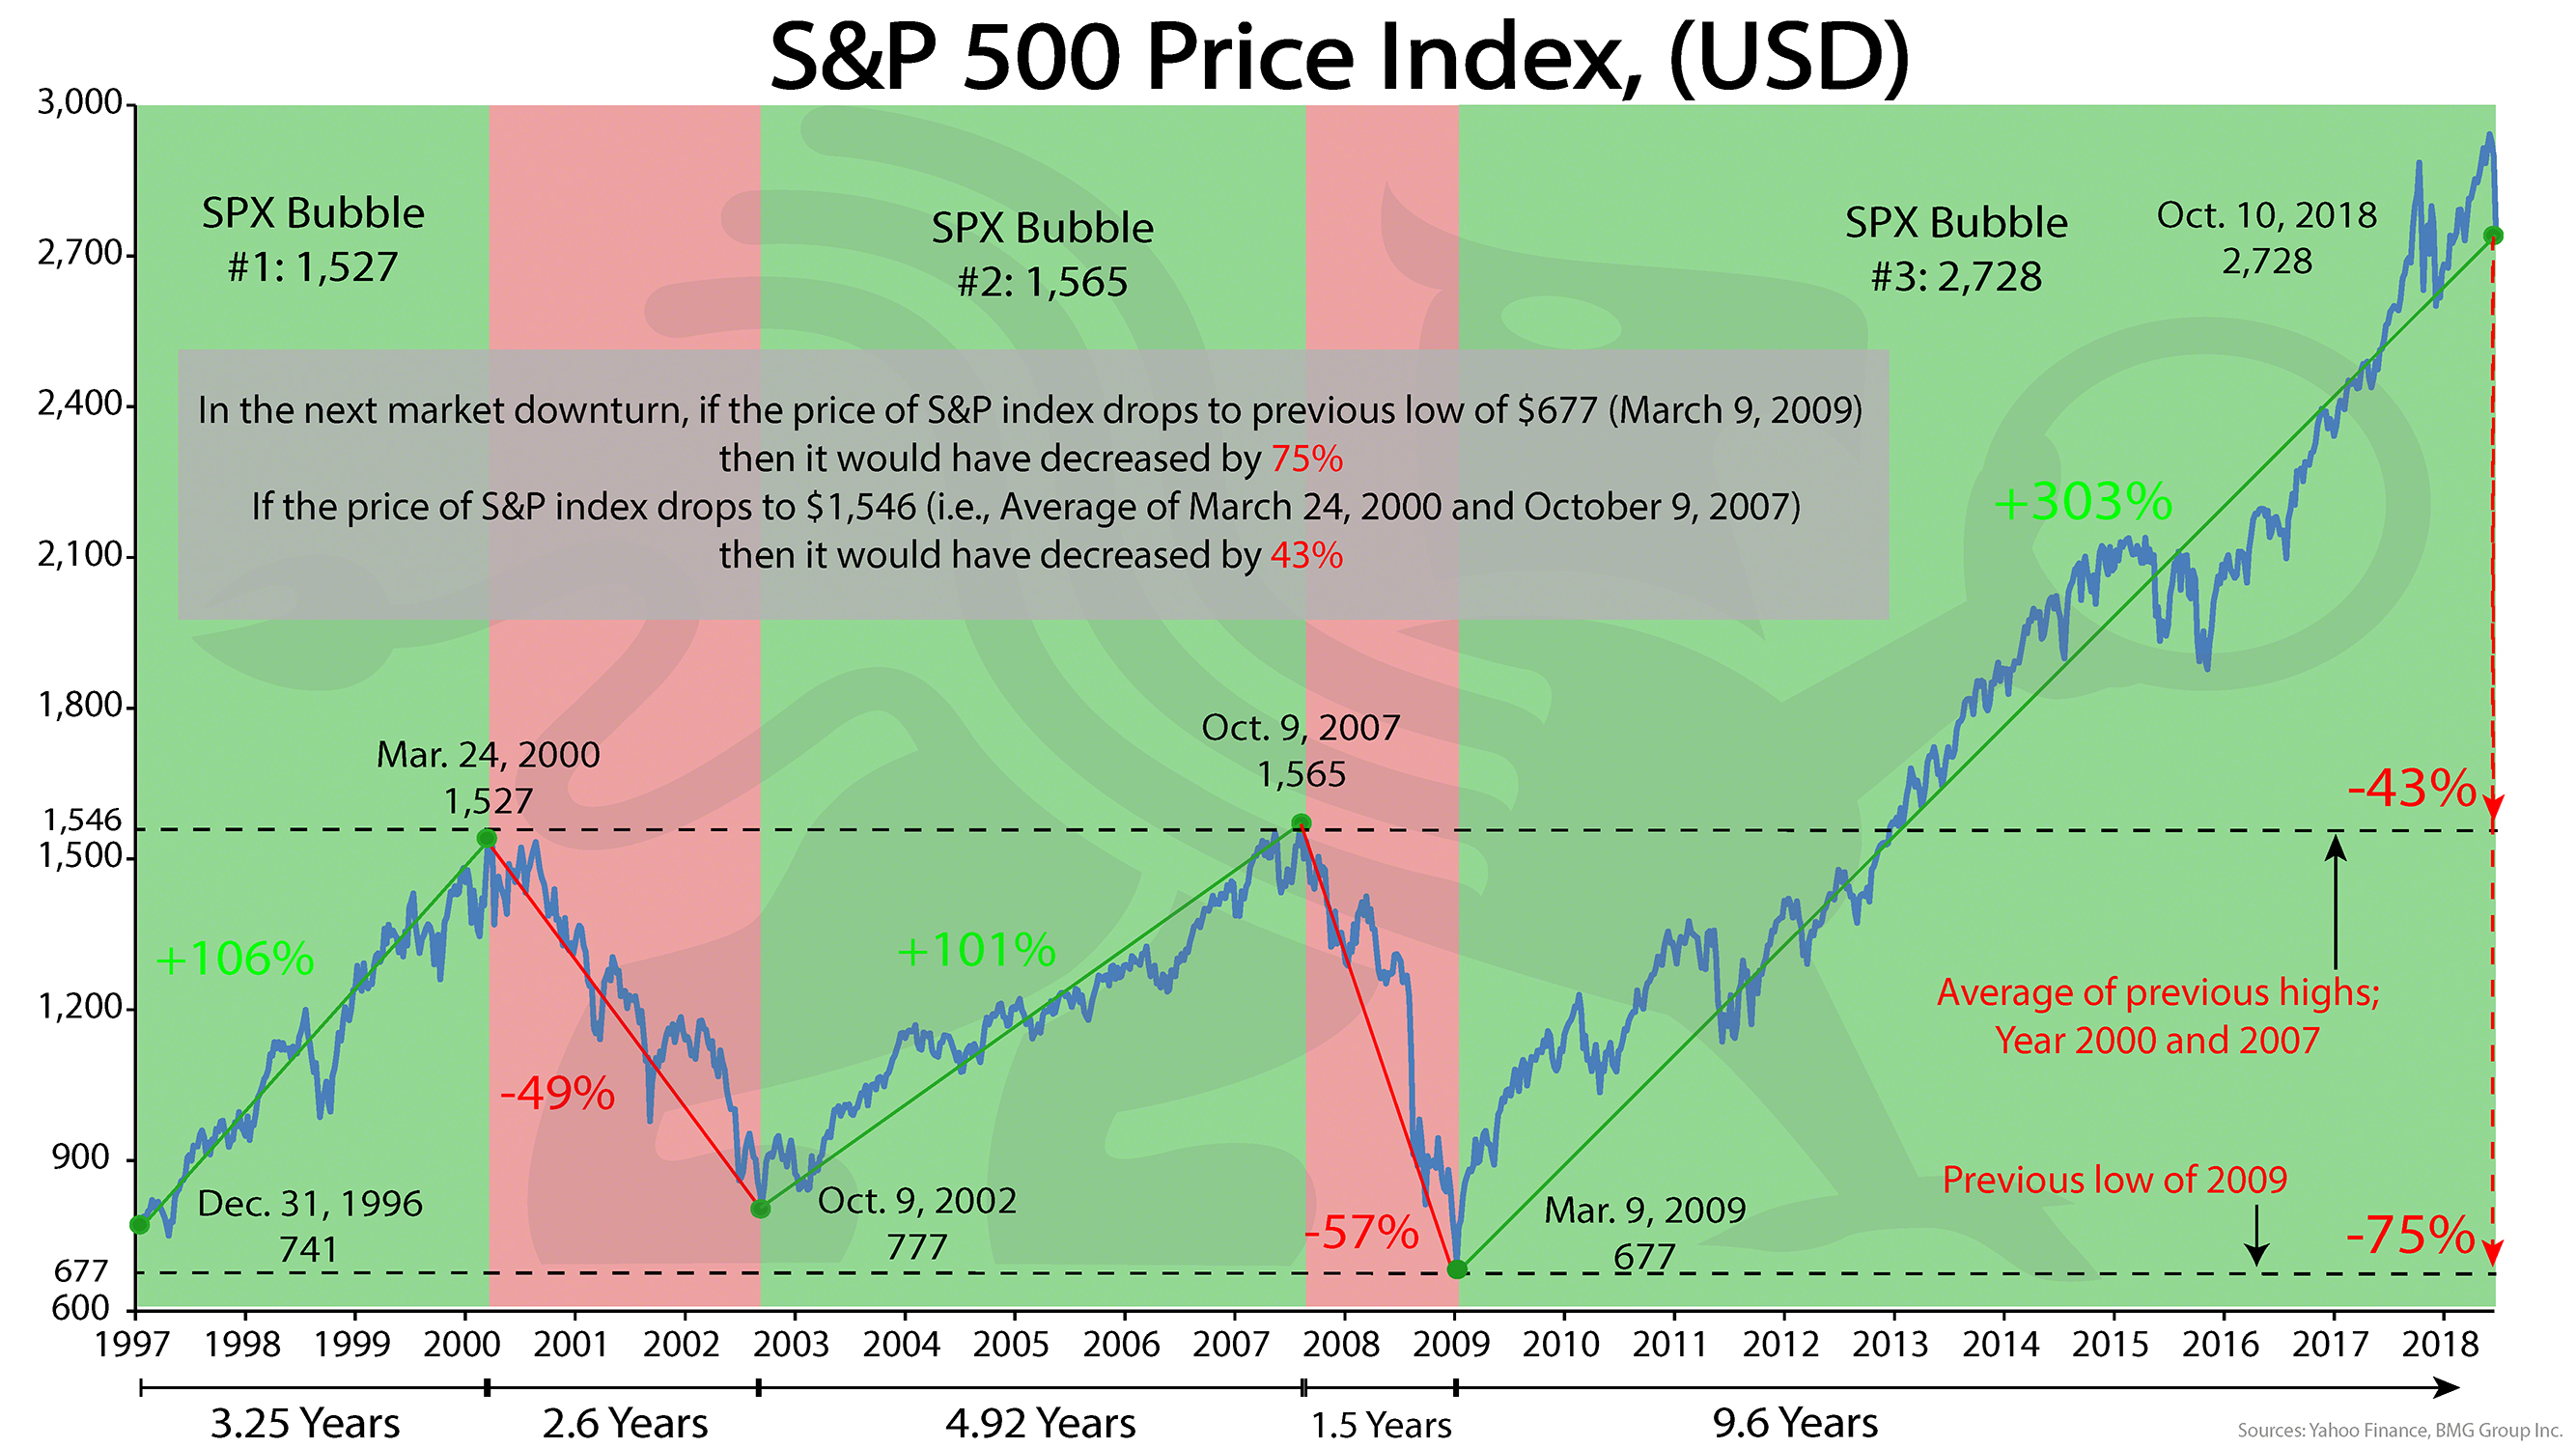 S&P 500 Price Index  | BullionBuzz Chart of the Week